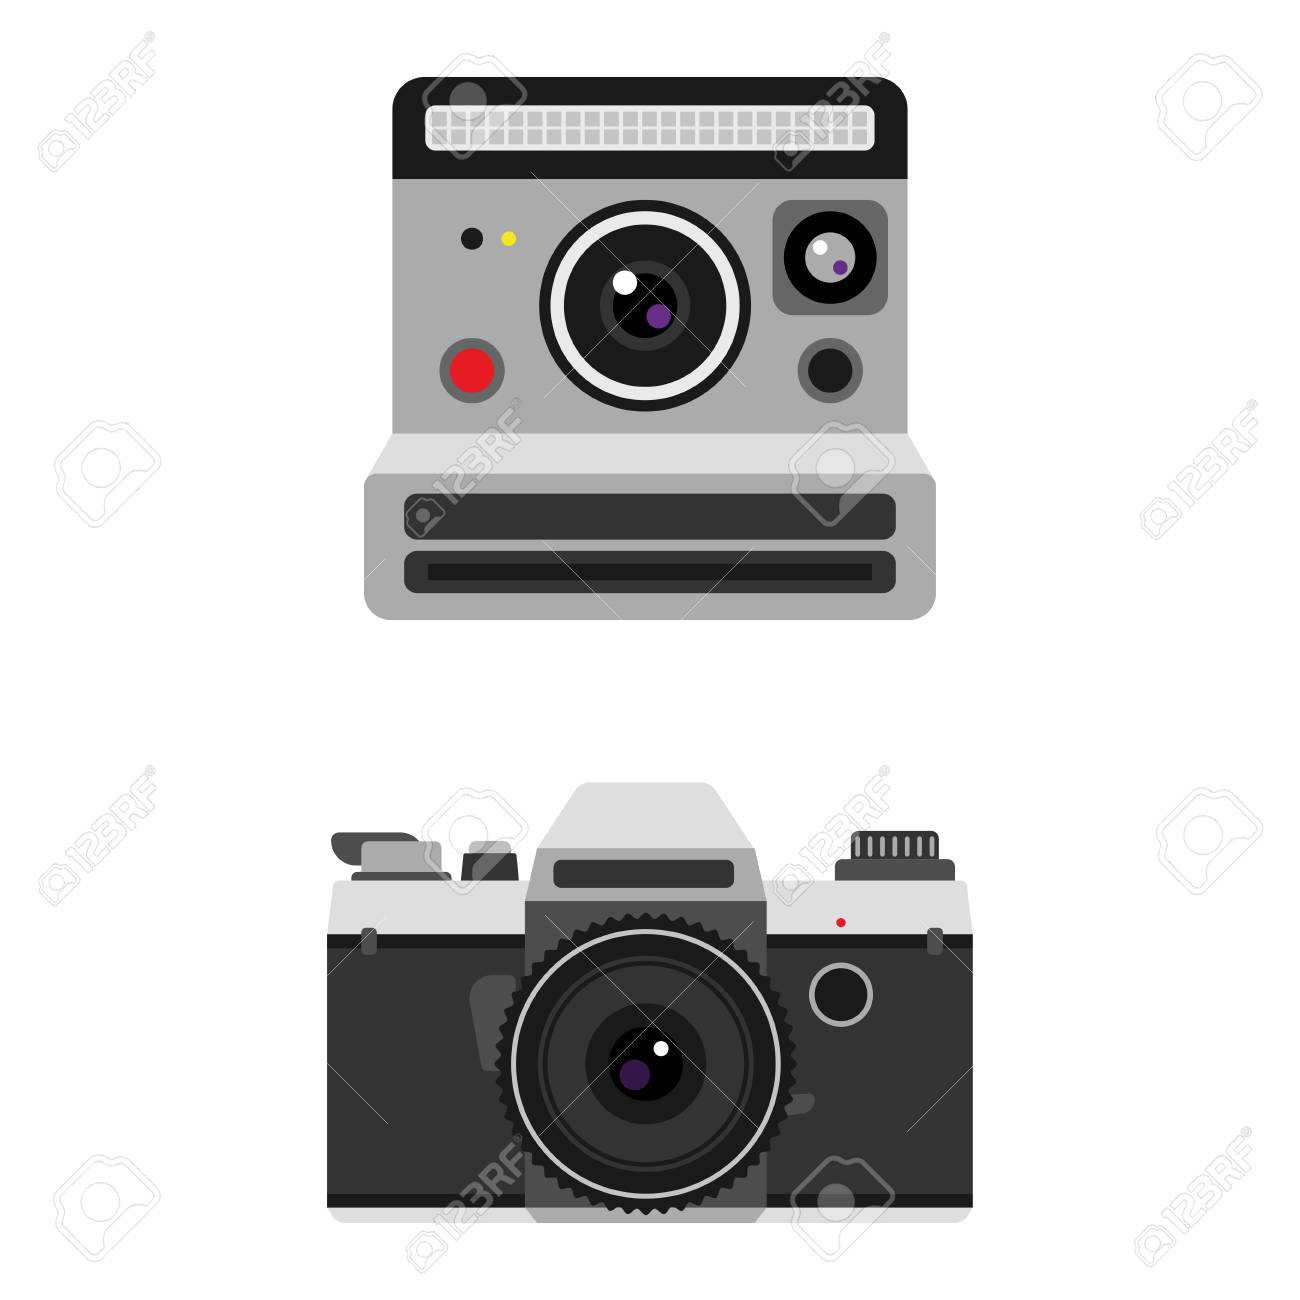 Camera Photo Optic Lenses Set On White Background Different Types Of Digital Cameras Objective Retro Equipment Professional